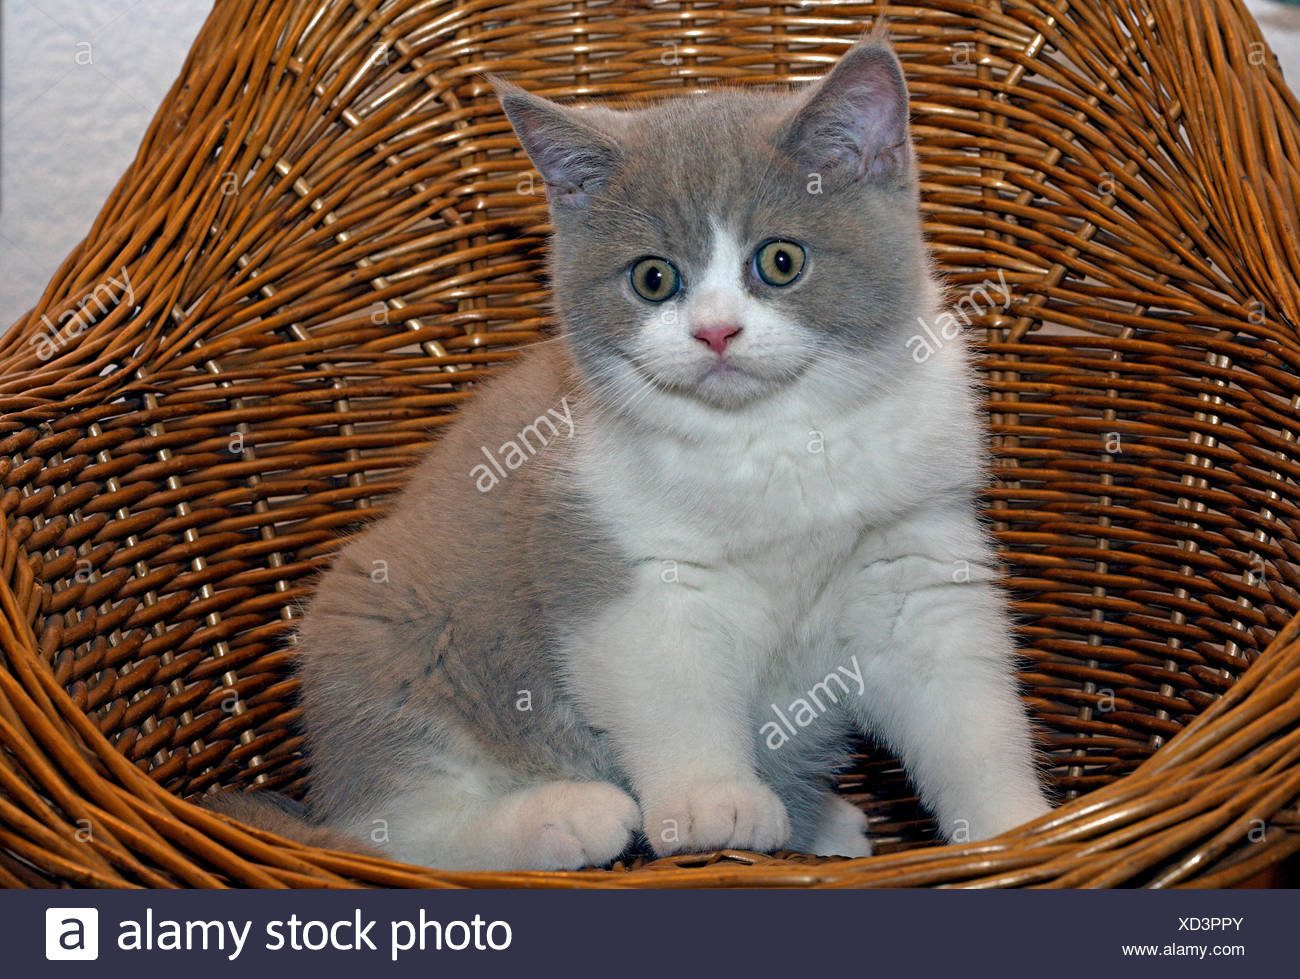 British Shorthair Felis Silvestris F Catus Eleven Month Old Kitten In Fawn Tortie White Sitting In A Basket Chair Stock Photo Alamy